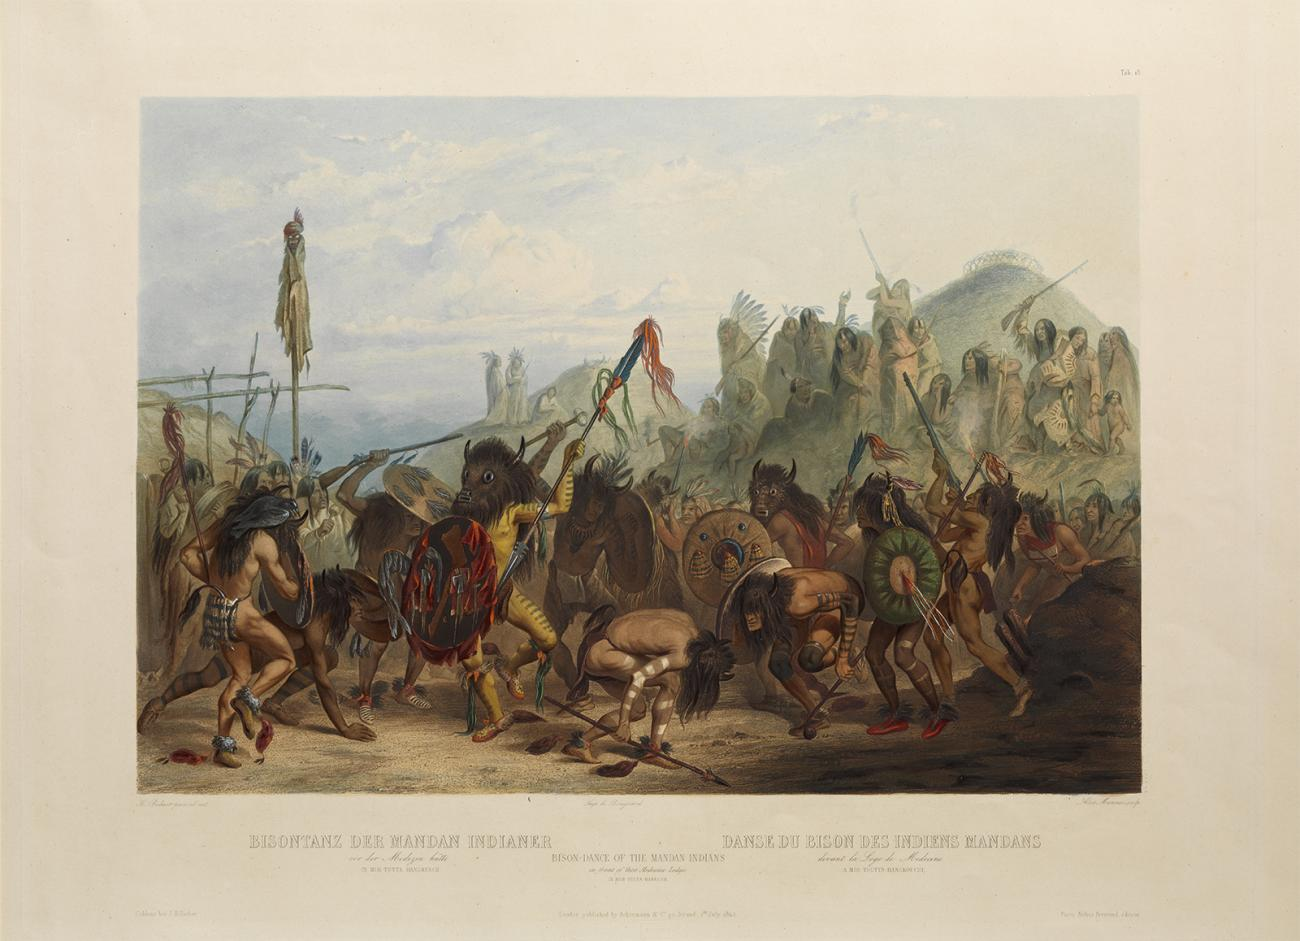 A painting of a dance among Native Americans.